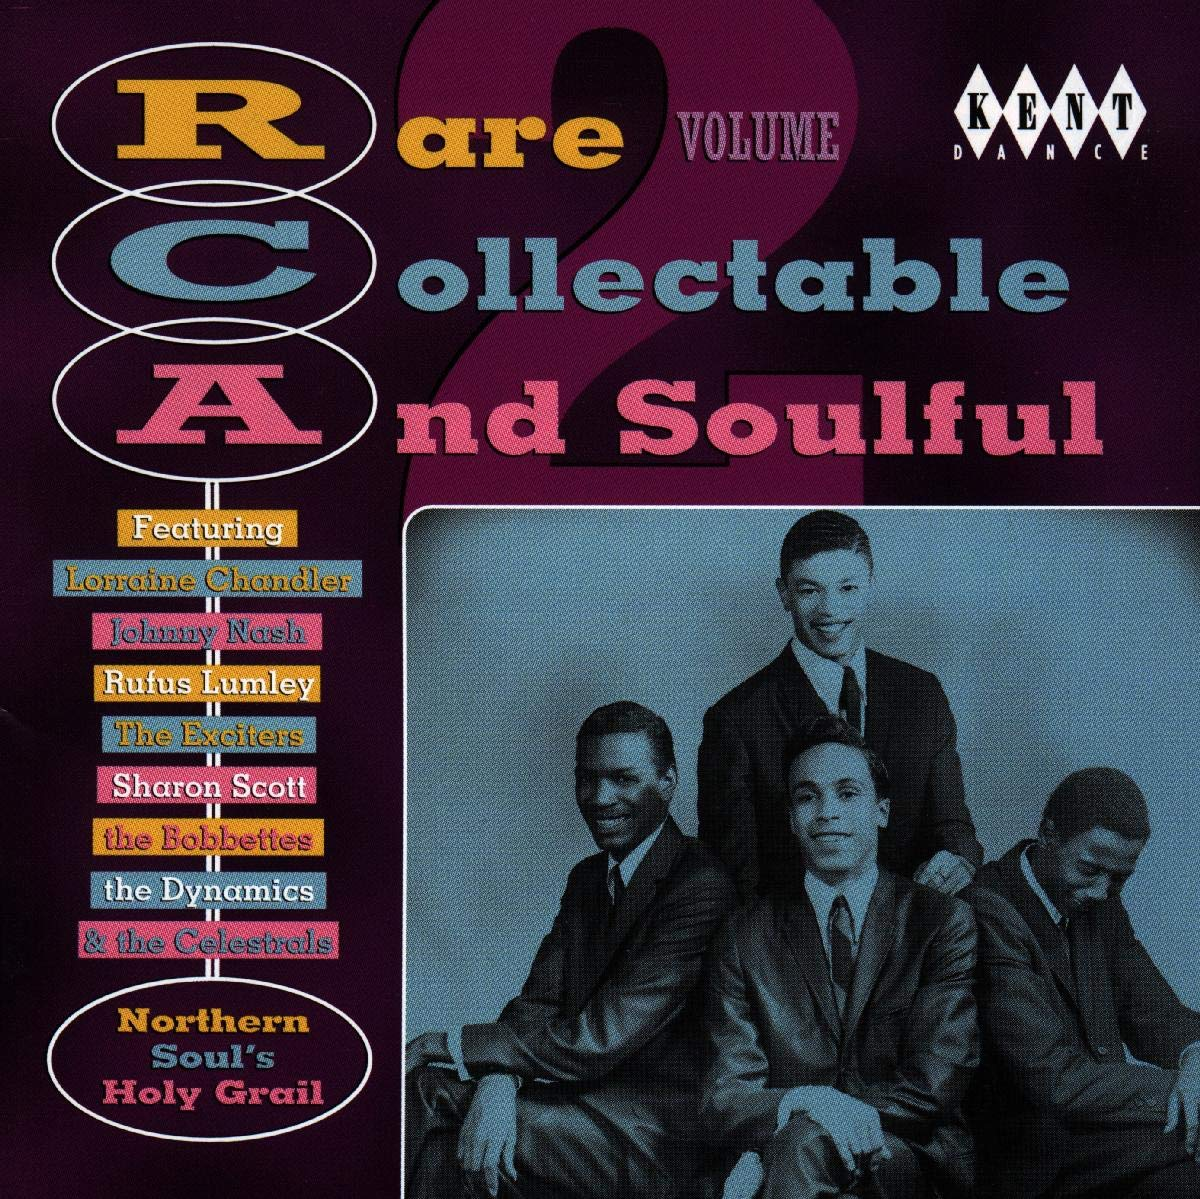 Rare Collectable Luxury goods Popular shop is the lowest price challenge And Soulful 2 Vol.